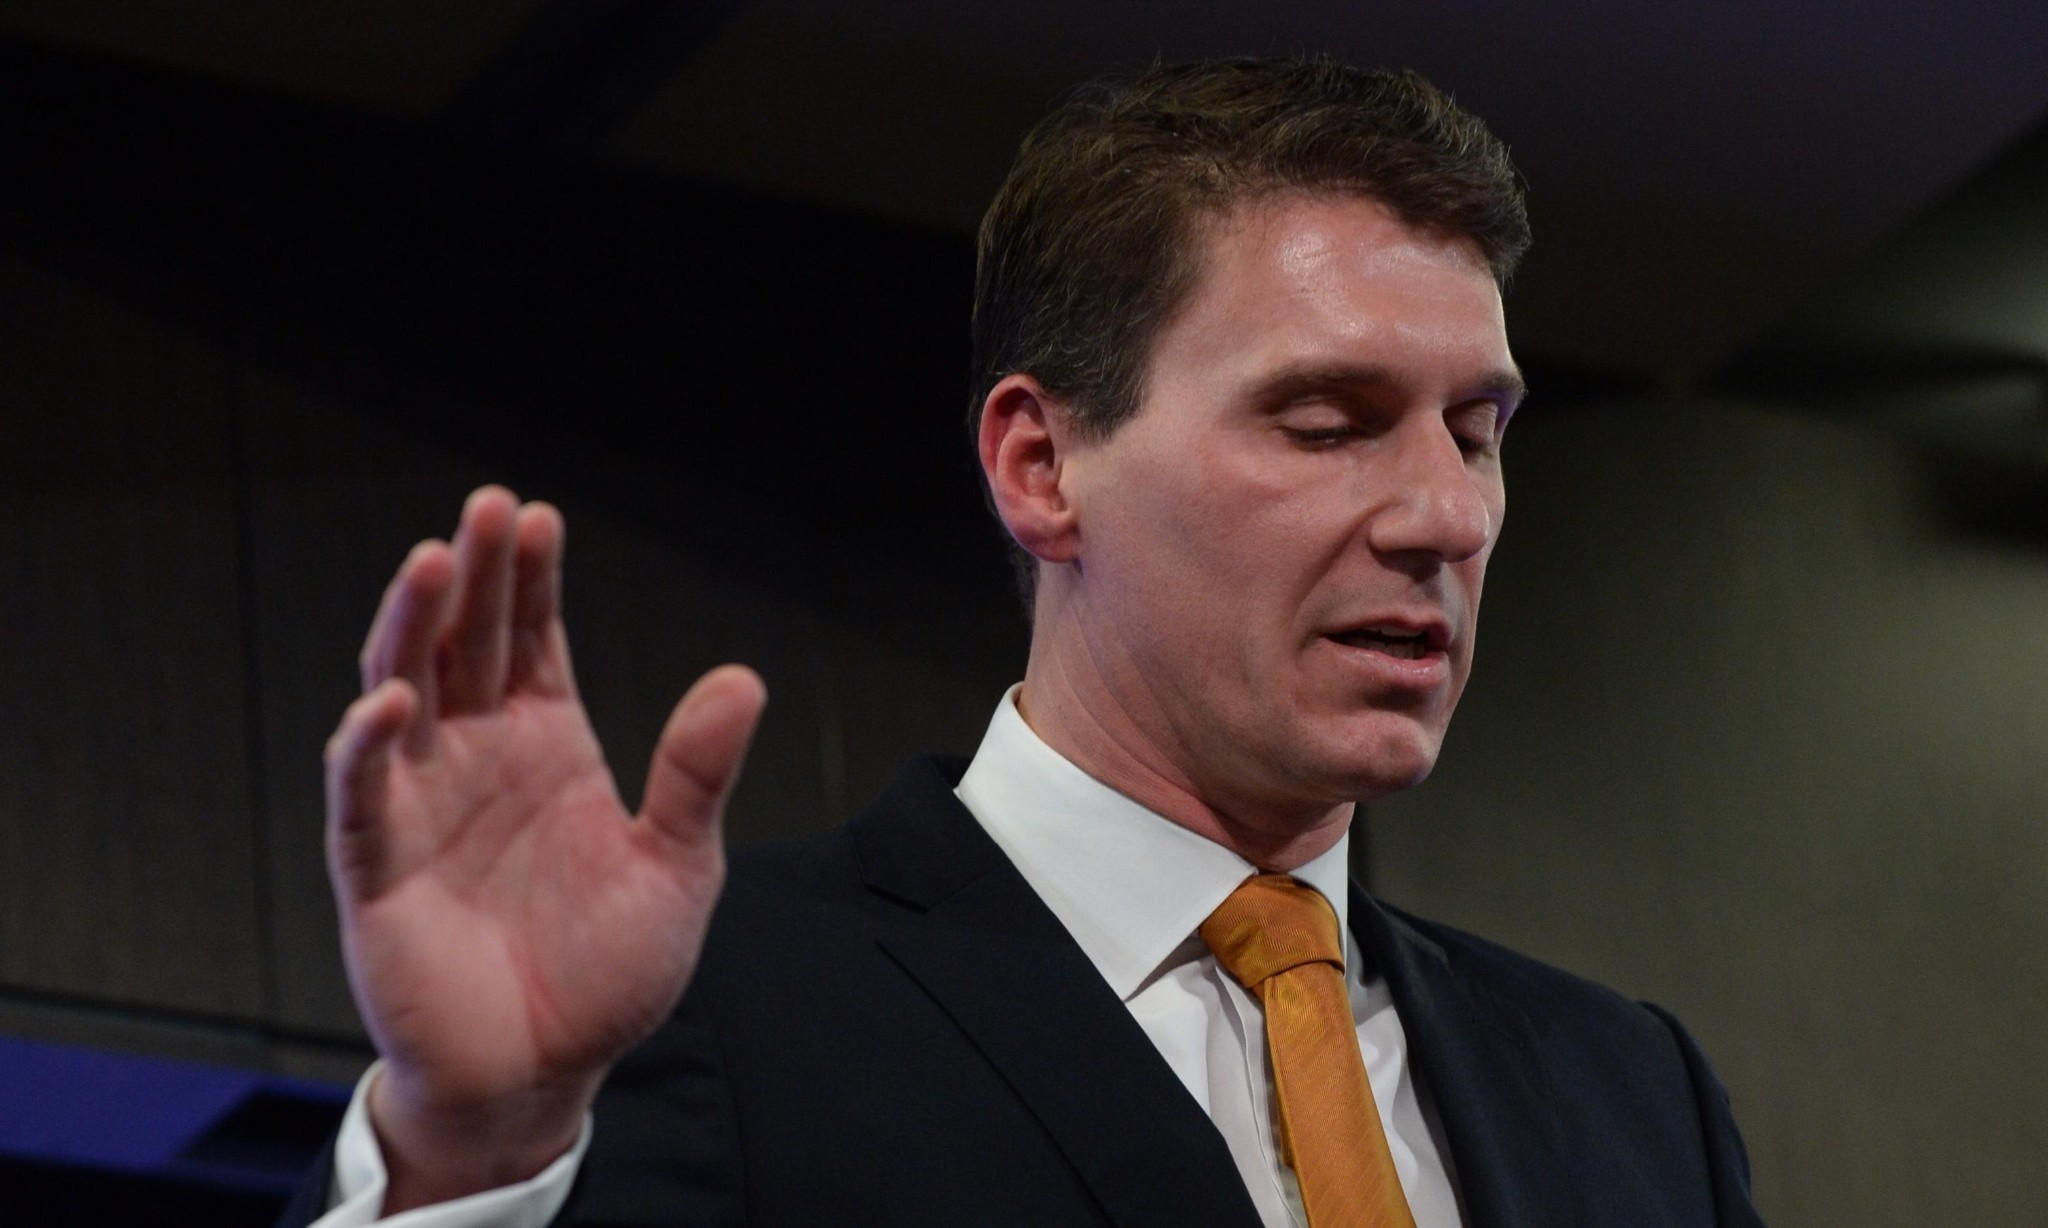 Australian senators Cory Bernardi and Malcolm Roberts pledge support for Donald Trump